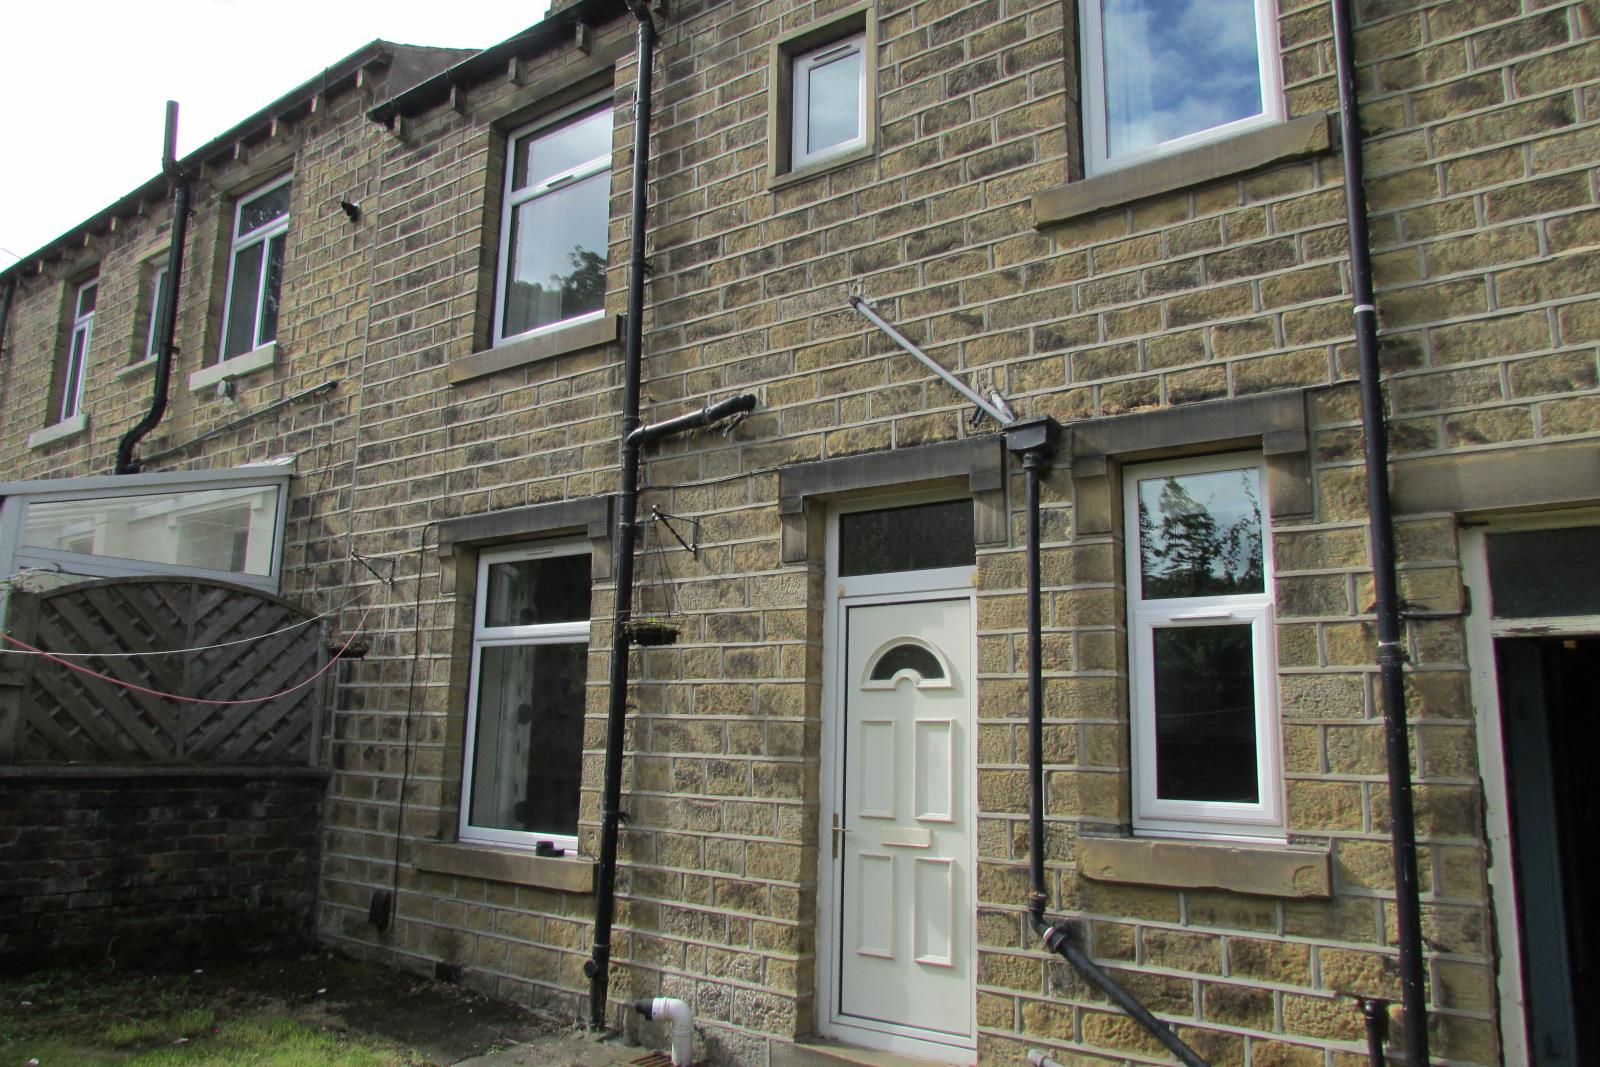 55 Taylor Hill Road, Huddersfield, HD4 6HJ